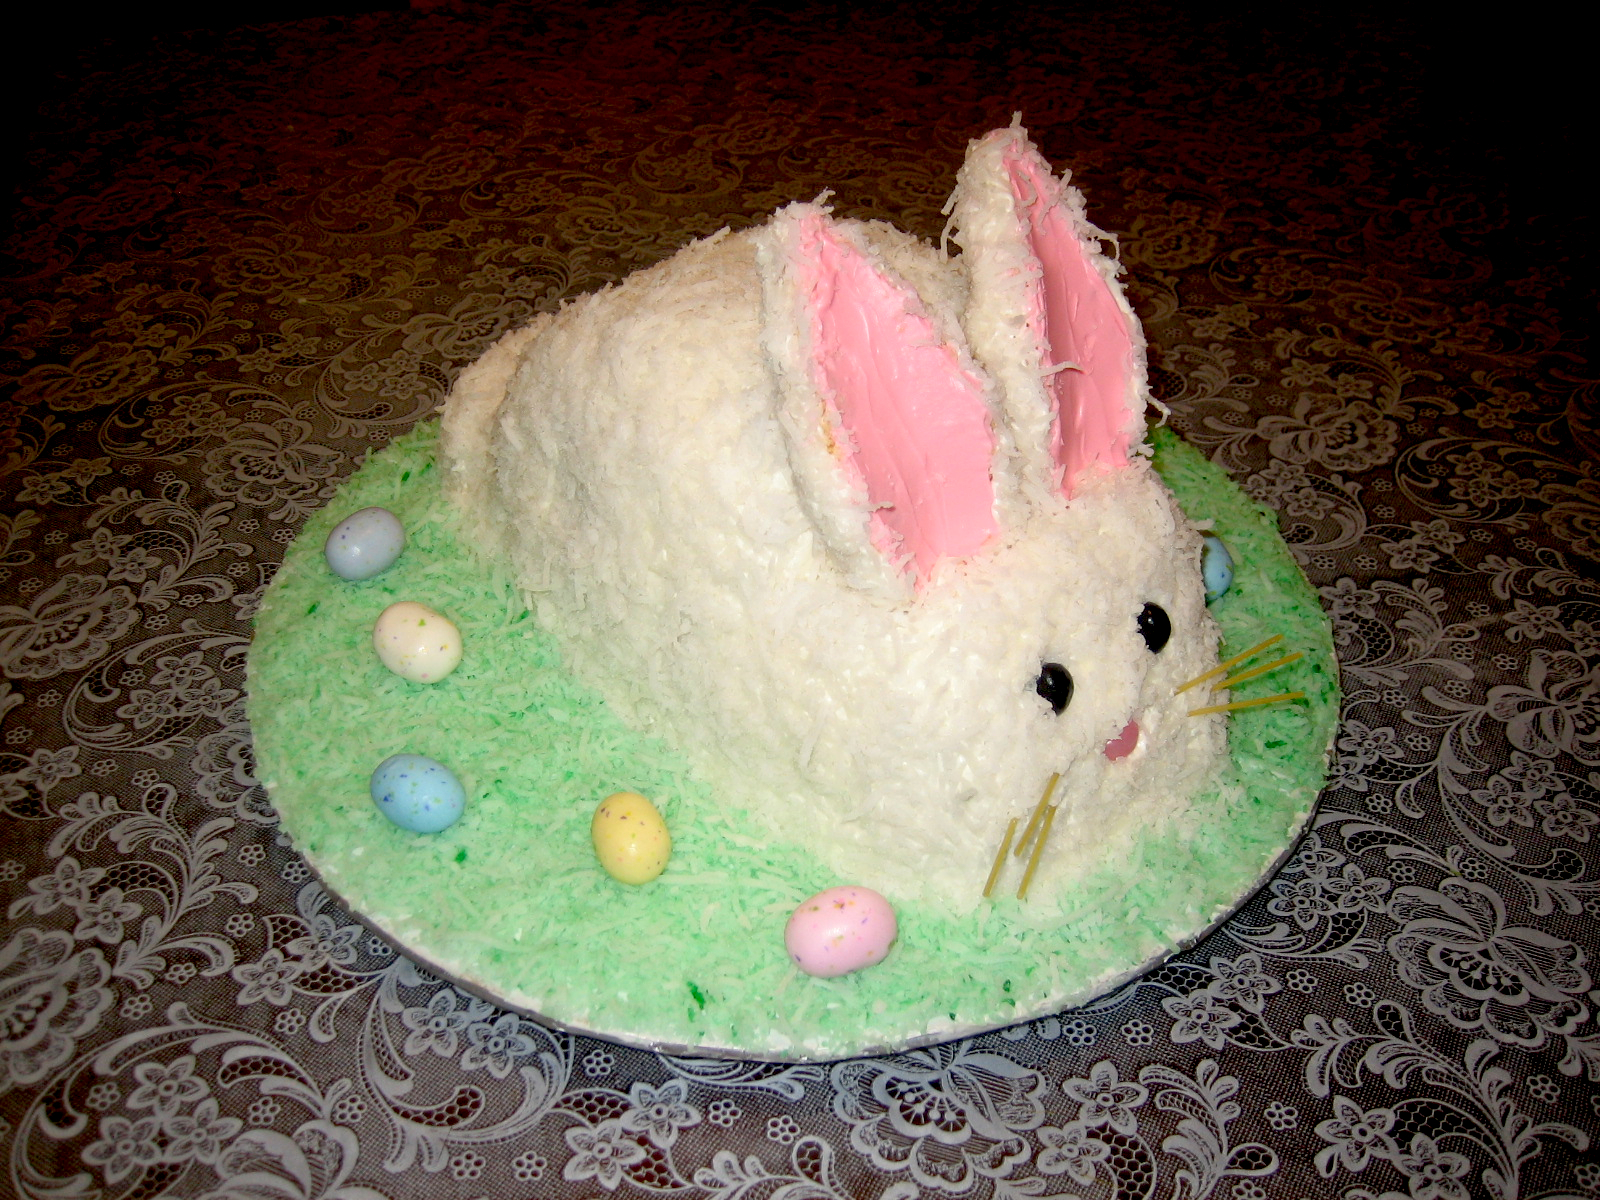 Awe Inspiring Easter Bunny Cakes Decoration Ideas Little Birthday Cakes Personalised Birthday Cards Paralily Jamesorg